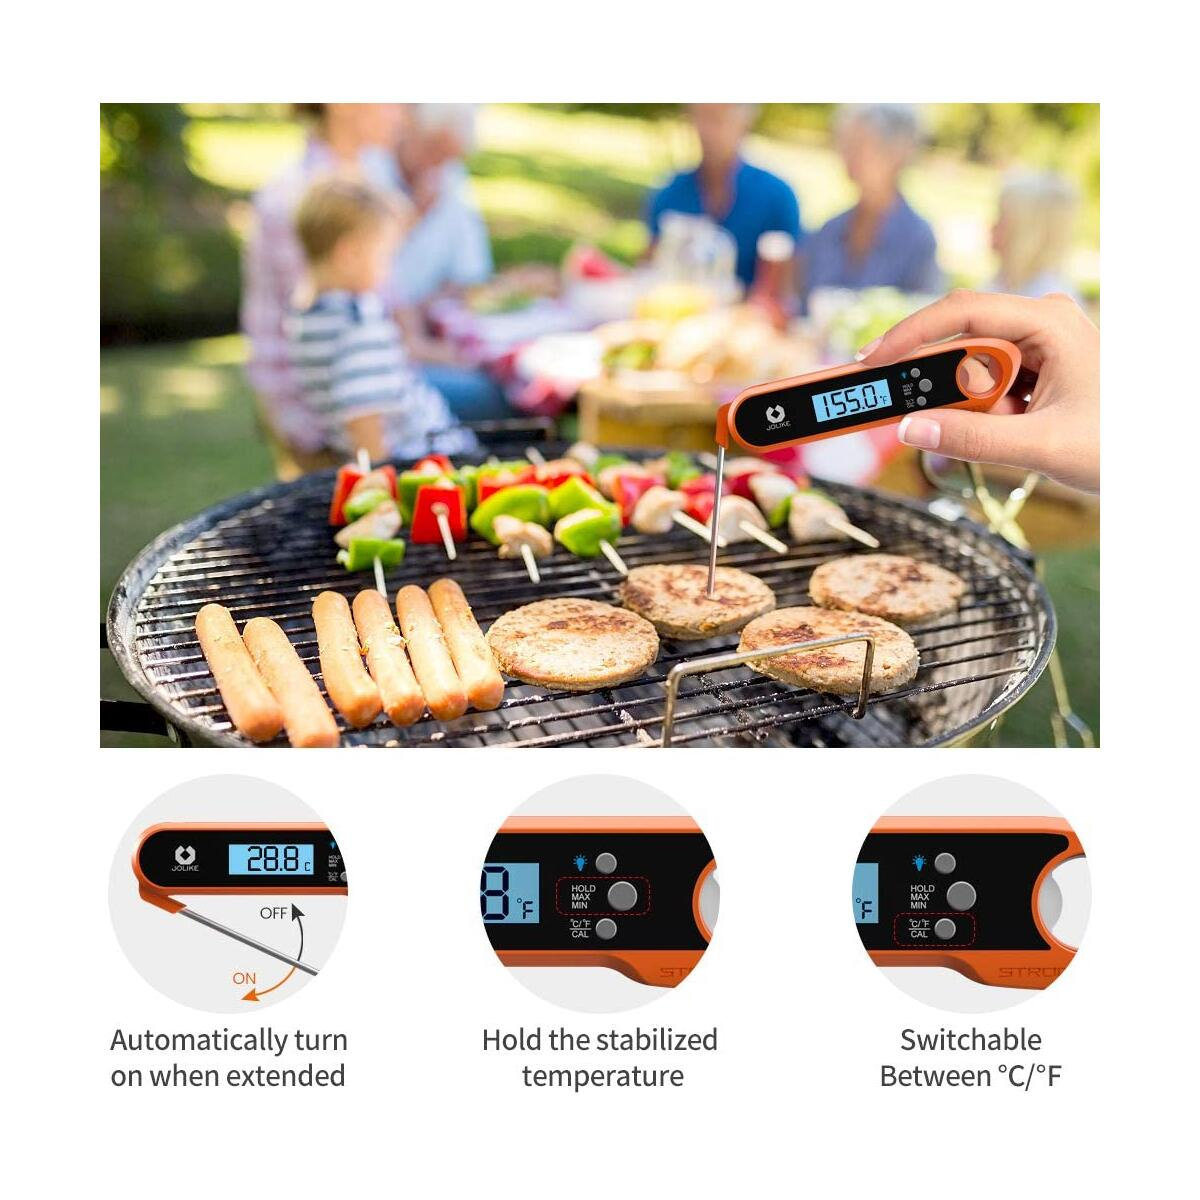 JOLIKE 2s Instant Read Meat Thermometer for Grilling Digital Steak Electronic Probe with IP67 Waterproof Internal Magnets for Kitchen Food Baking BBQ Candy